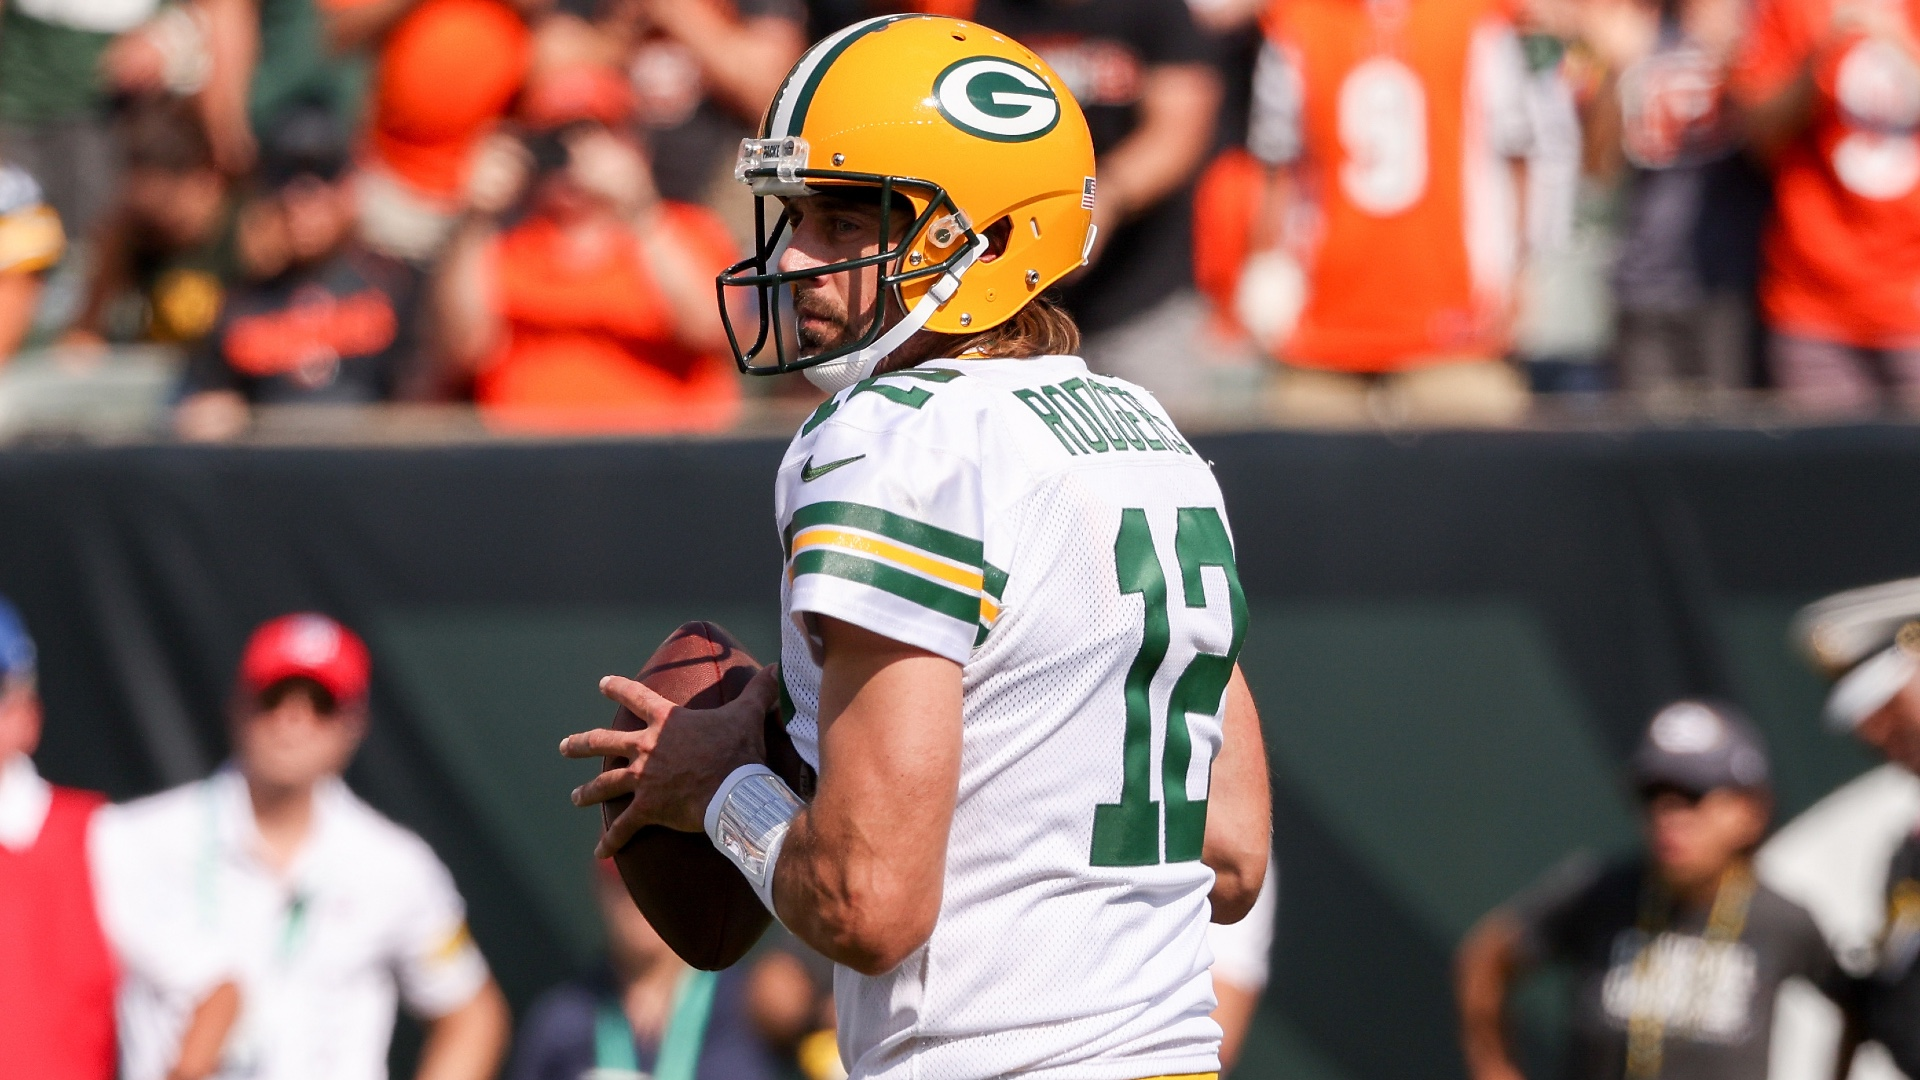 Aaron Rodgers tells Joe Burrow to slide more after Packers' win vs. Bengals: 'You're too damn talented' thumbnail